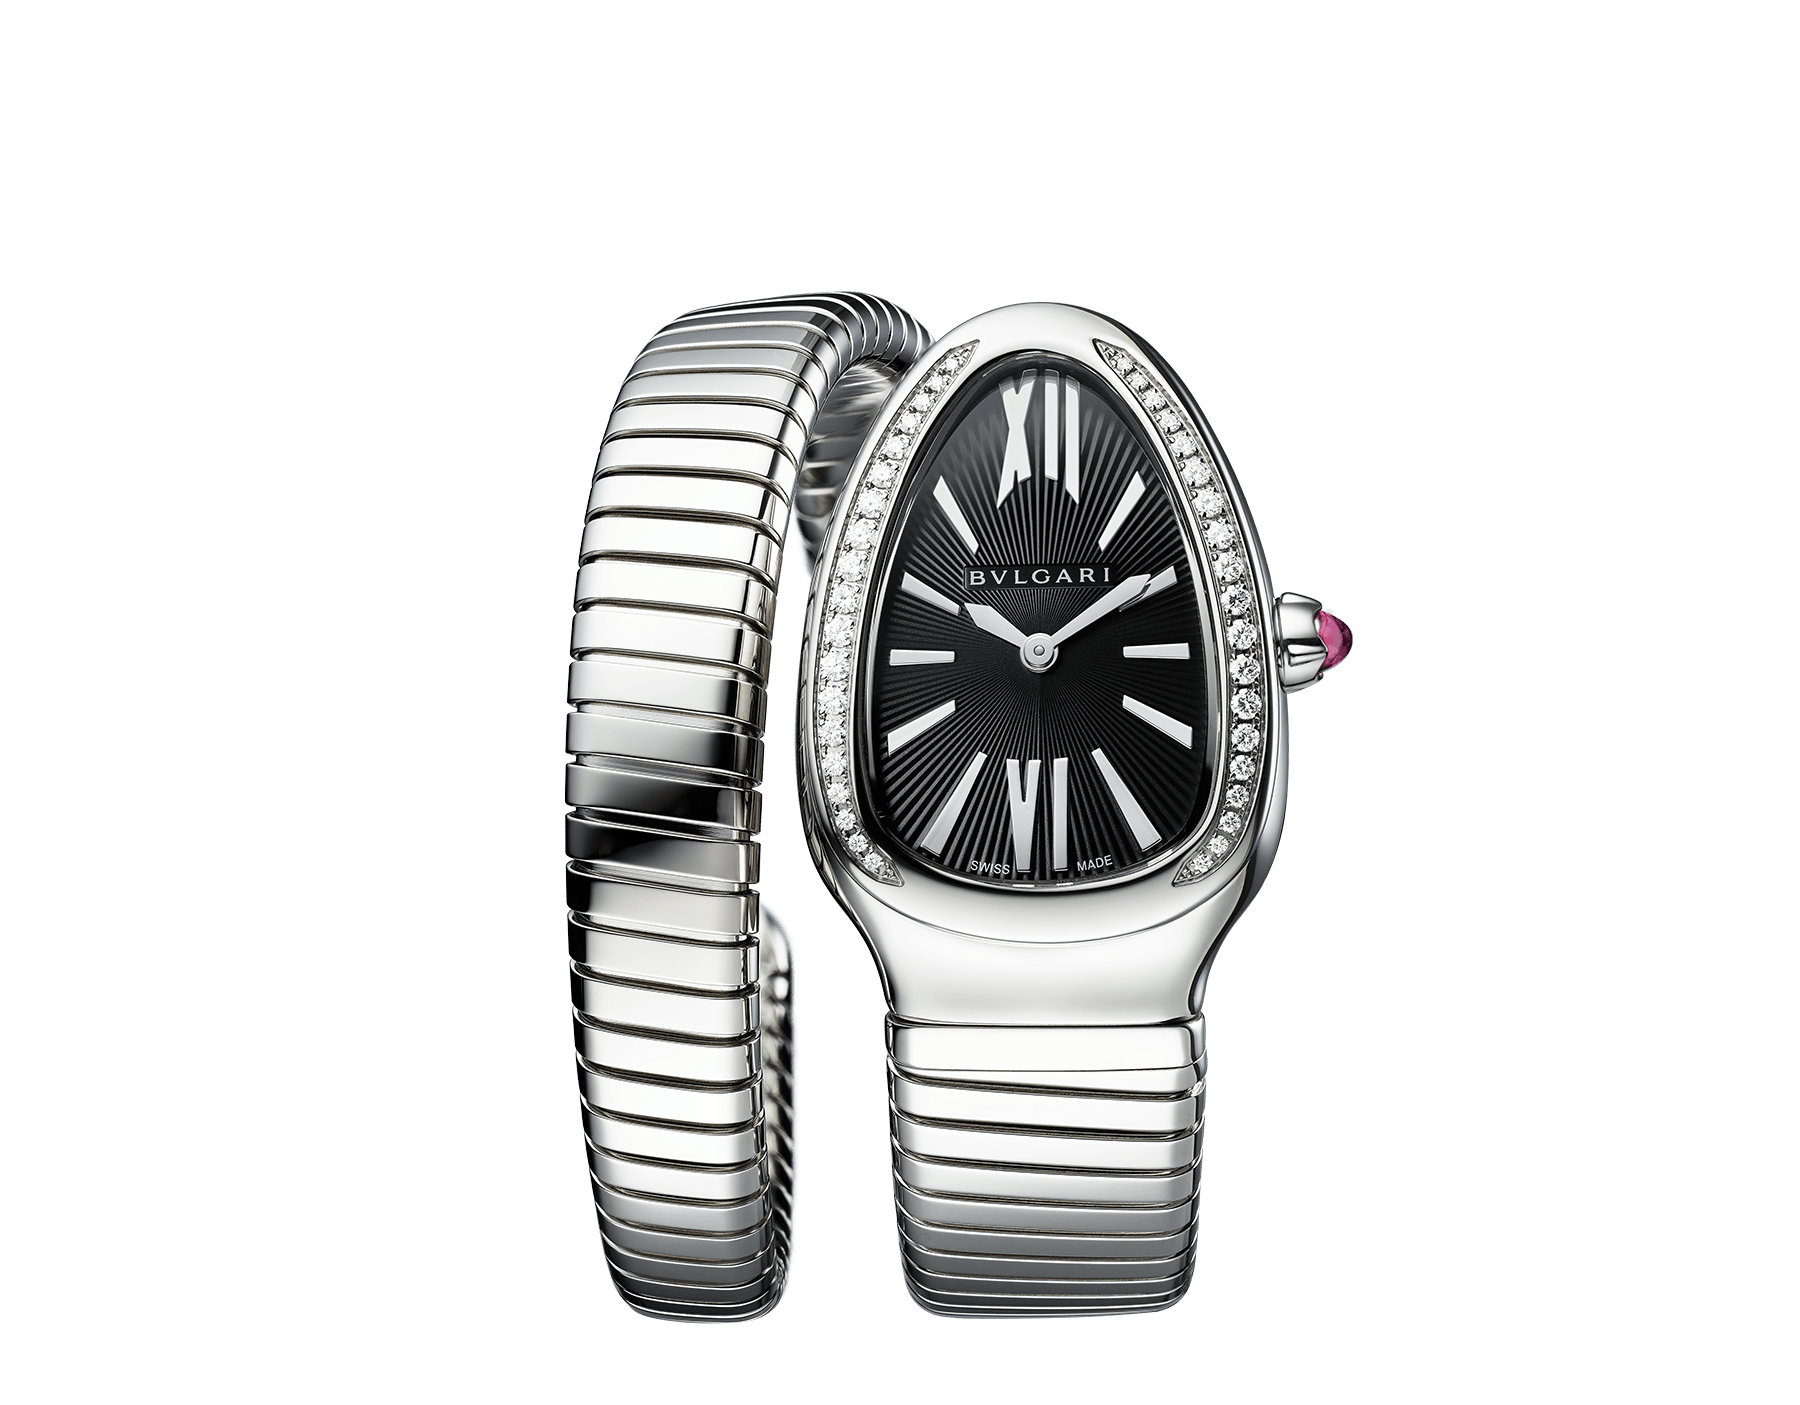 Serpenti Tubogas single spiral watch with stainless steel case and bracelet, bezel set with brilliant-cut diamonds and black dial with guilloché soleil treatment. Water-resistant up to 30 metres. Small size 103524 image 1